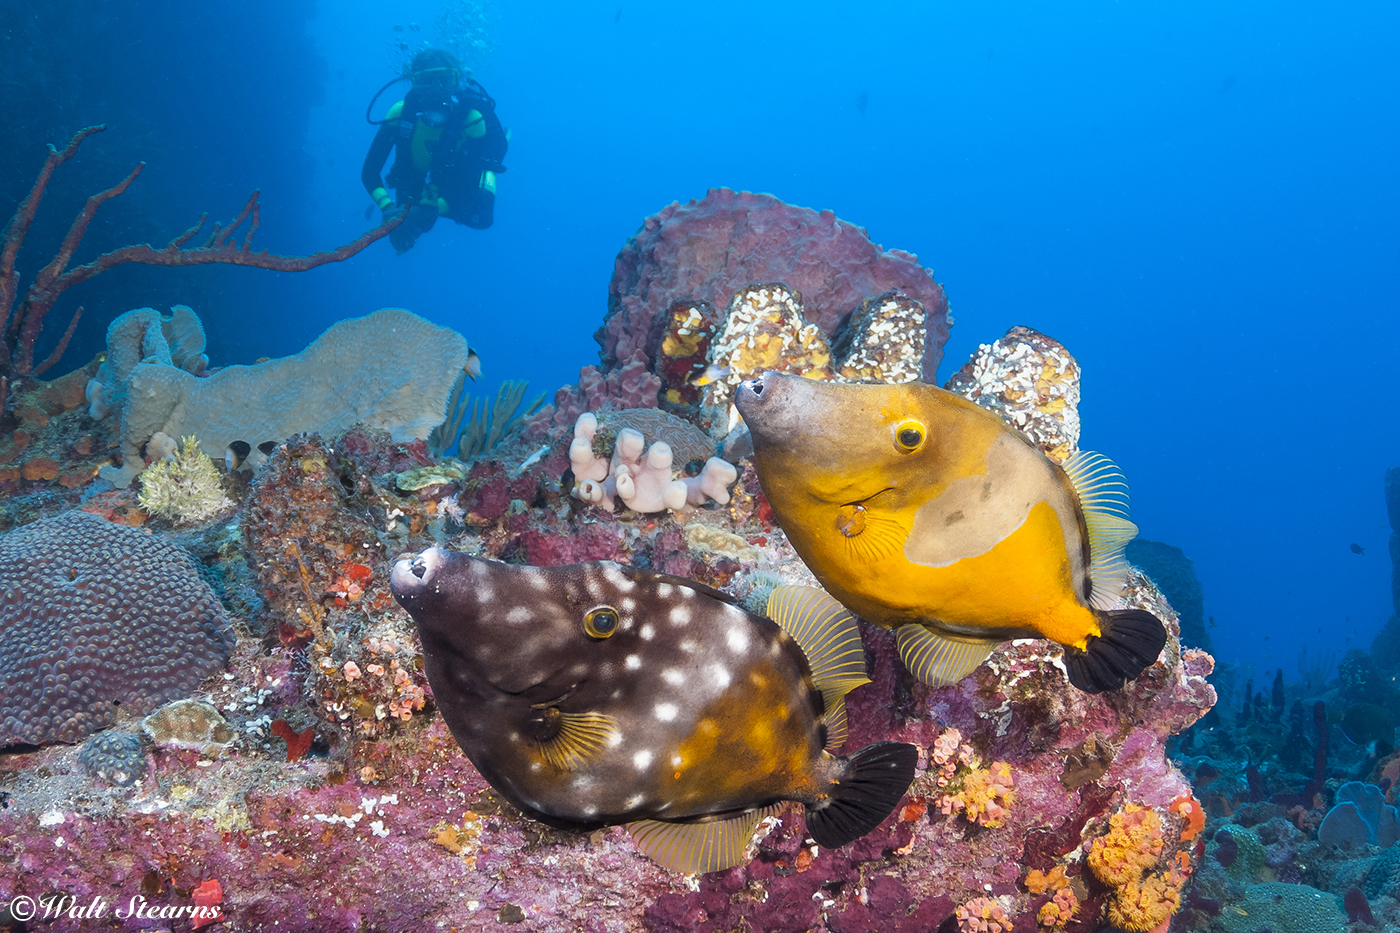 Same species, different colors. The white-spotted filefish can change the color of its skin and the prominence of its spots to match its surroundings, going from orange to dull brown and even a pale gray.